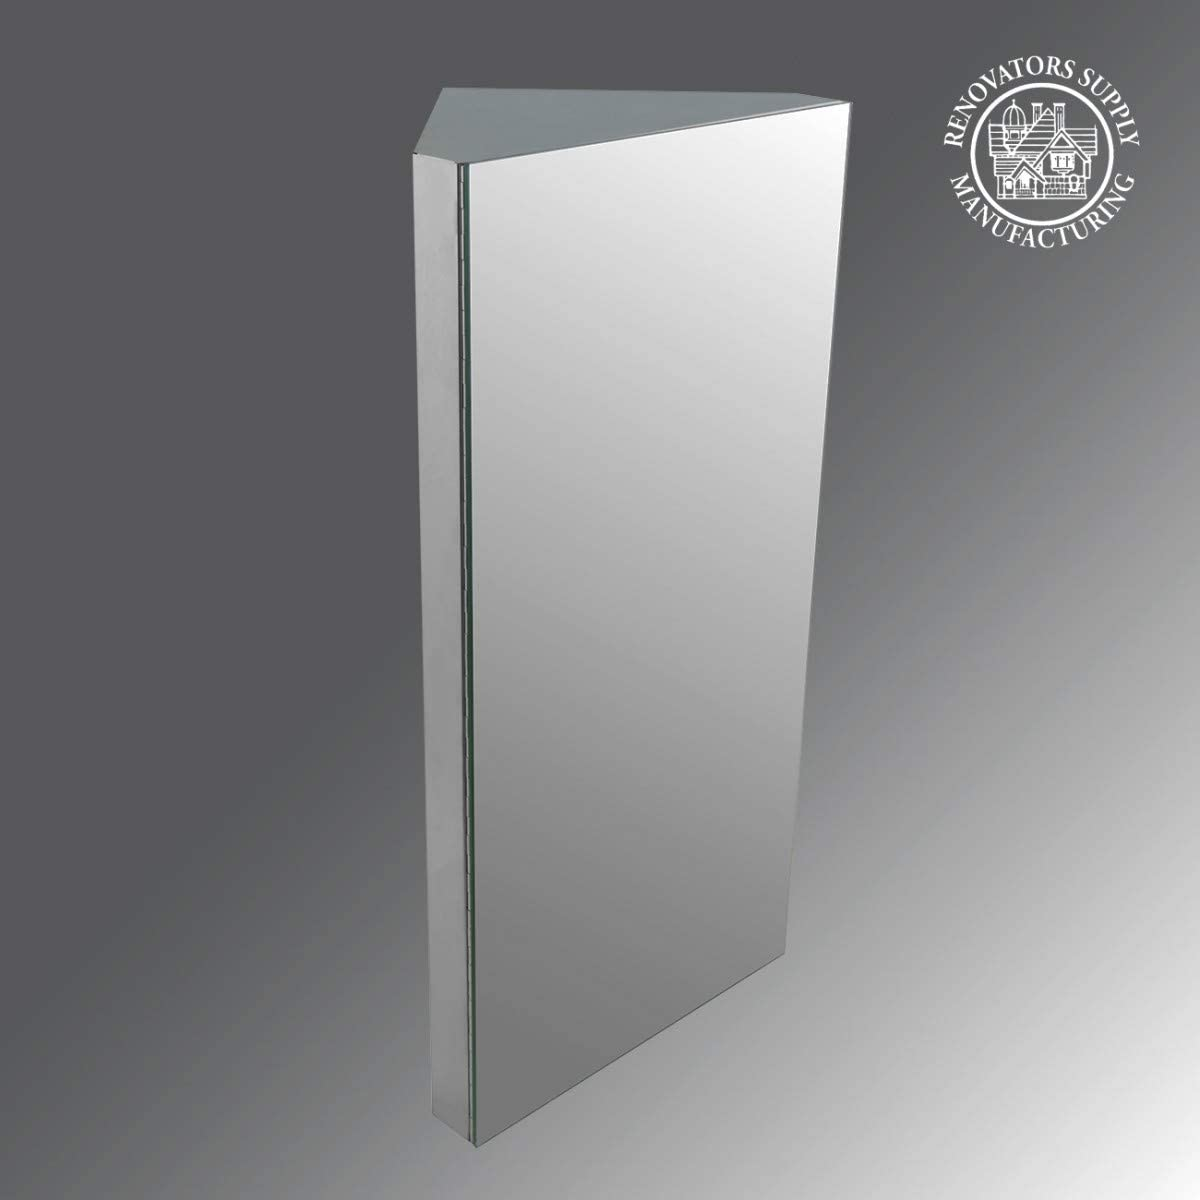 Renovator s Supply Corner Wall Mount Medicine Cabinet Brushed Stainless Steel with Mirror